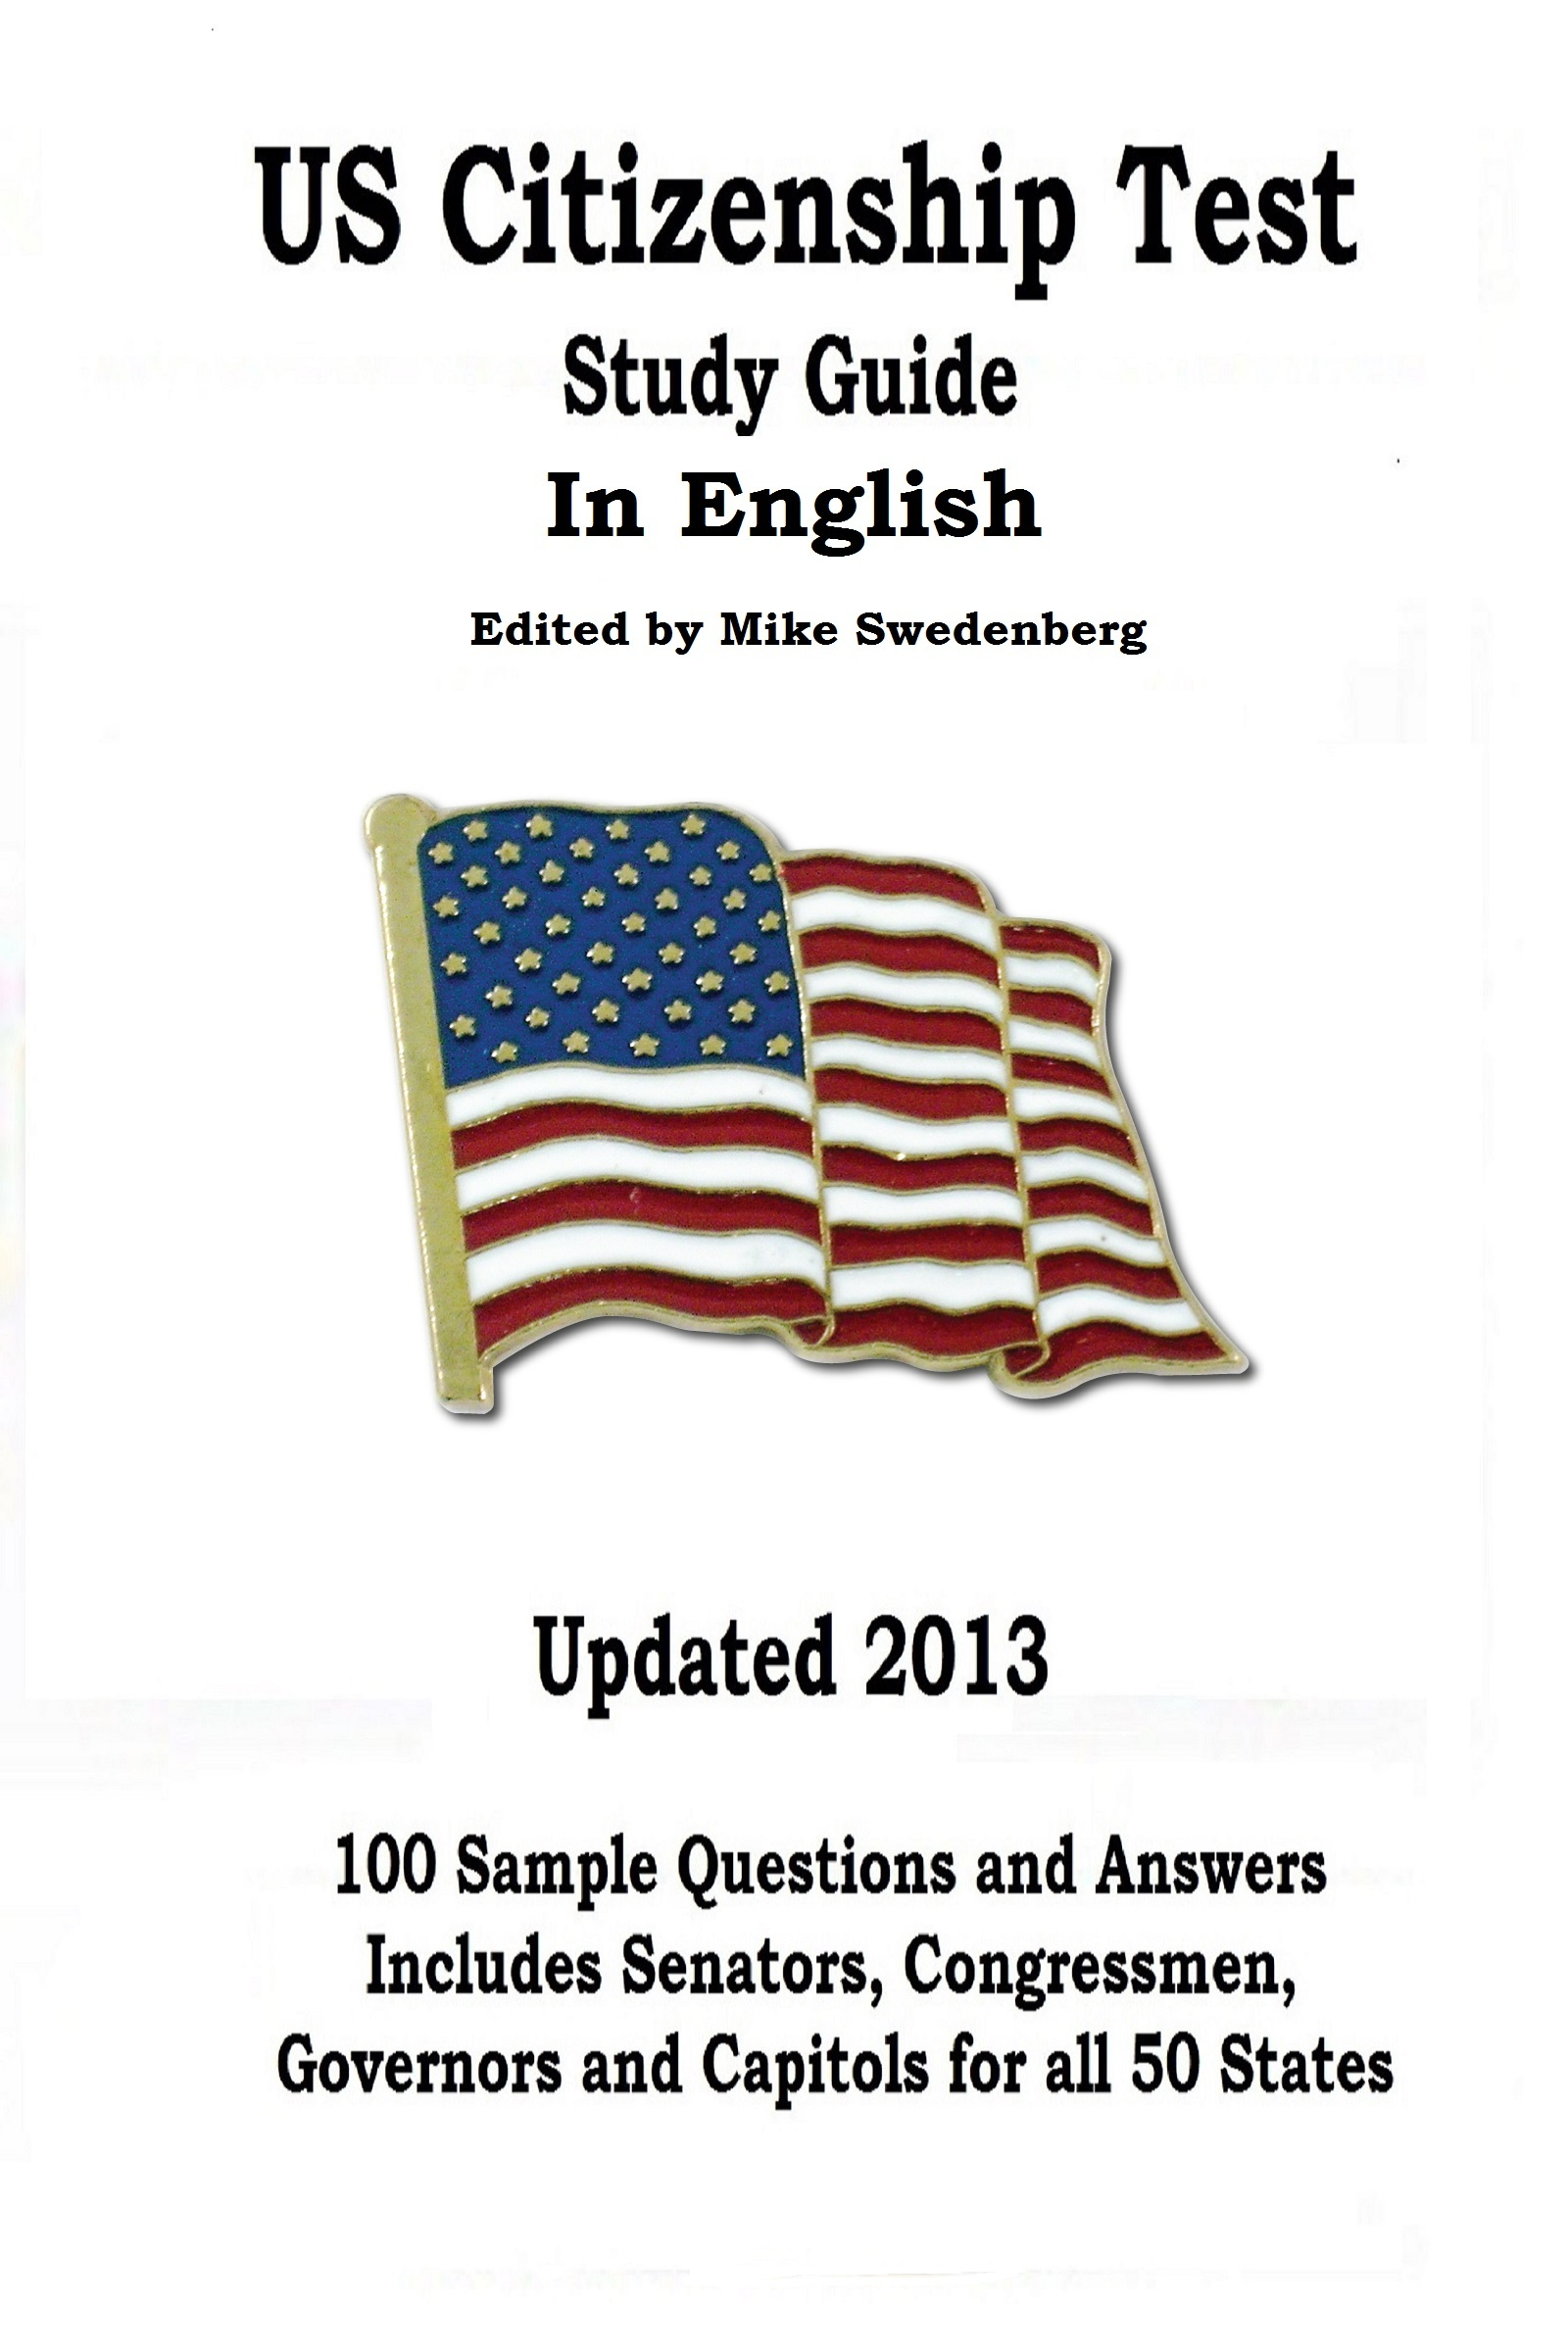 US Citizenship Test Study Guide in English By: Mike Swedenberg